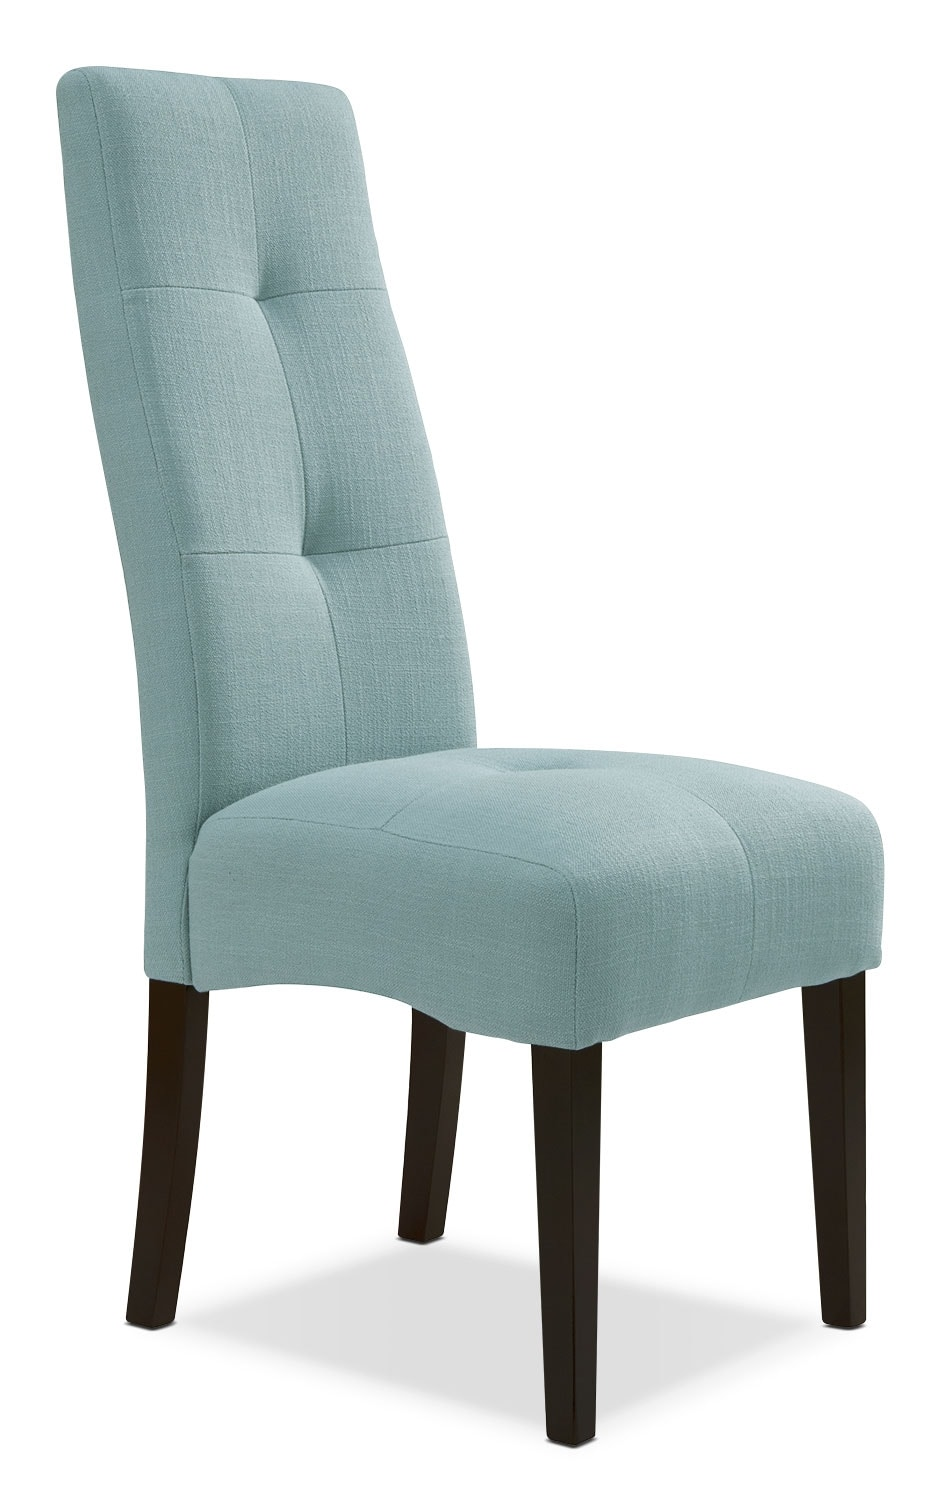 Sadie Dining Chair – Light Blue